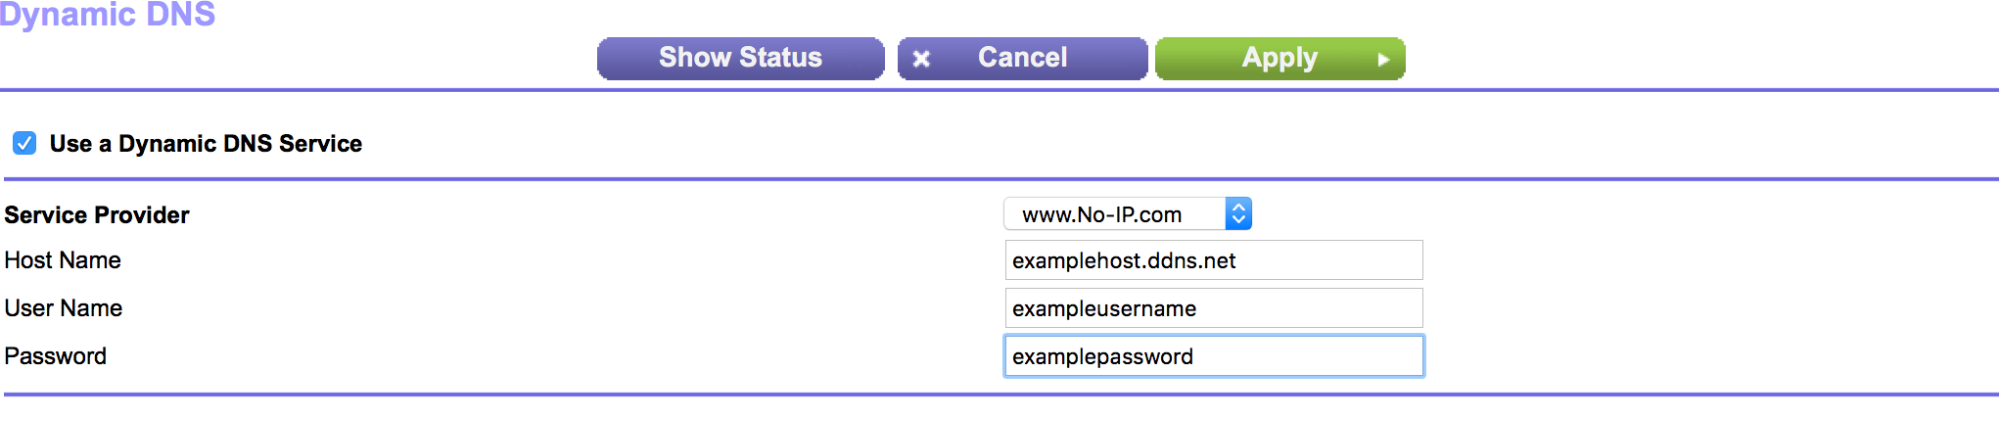 Setup and Configure Dynamic DNS in a Netgear Router